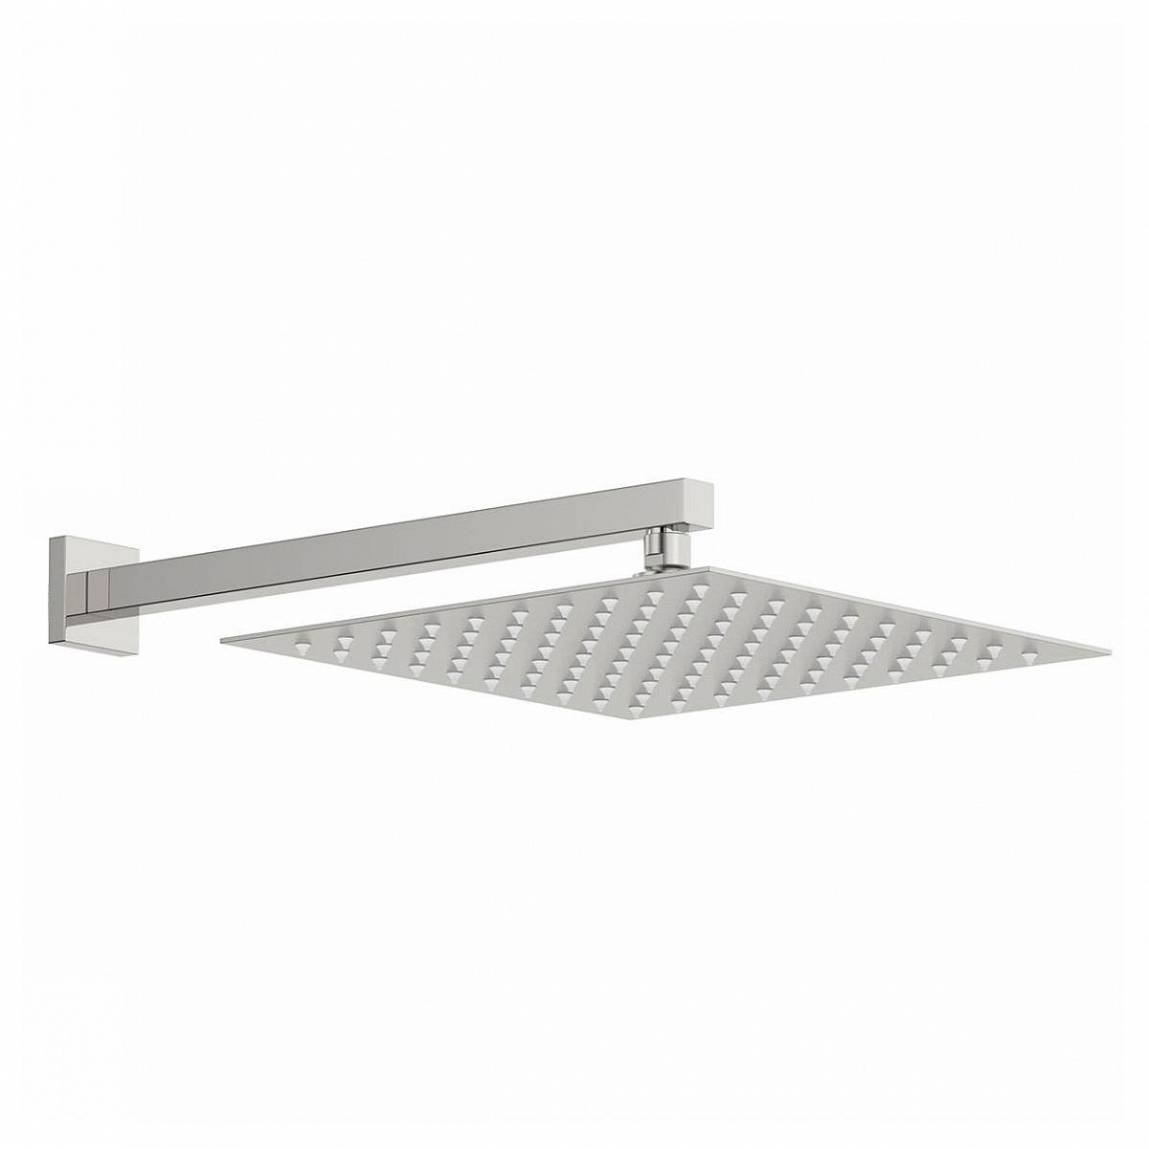 Image of Arcus 300mm Shower Head & Square Wall Arm